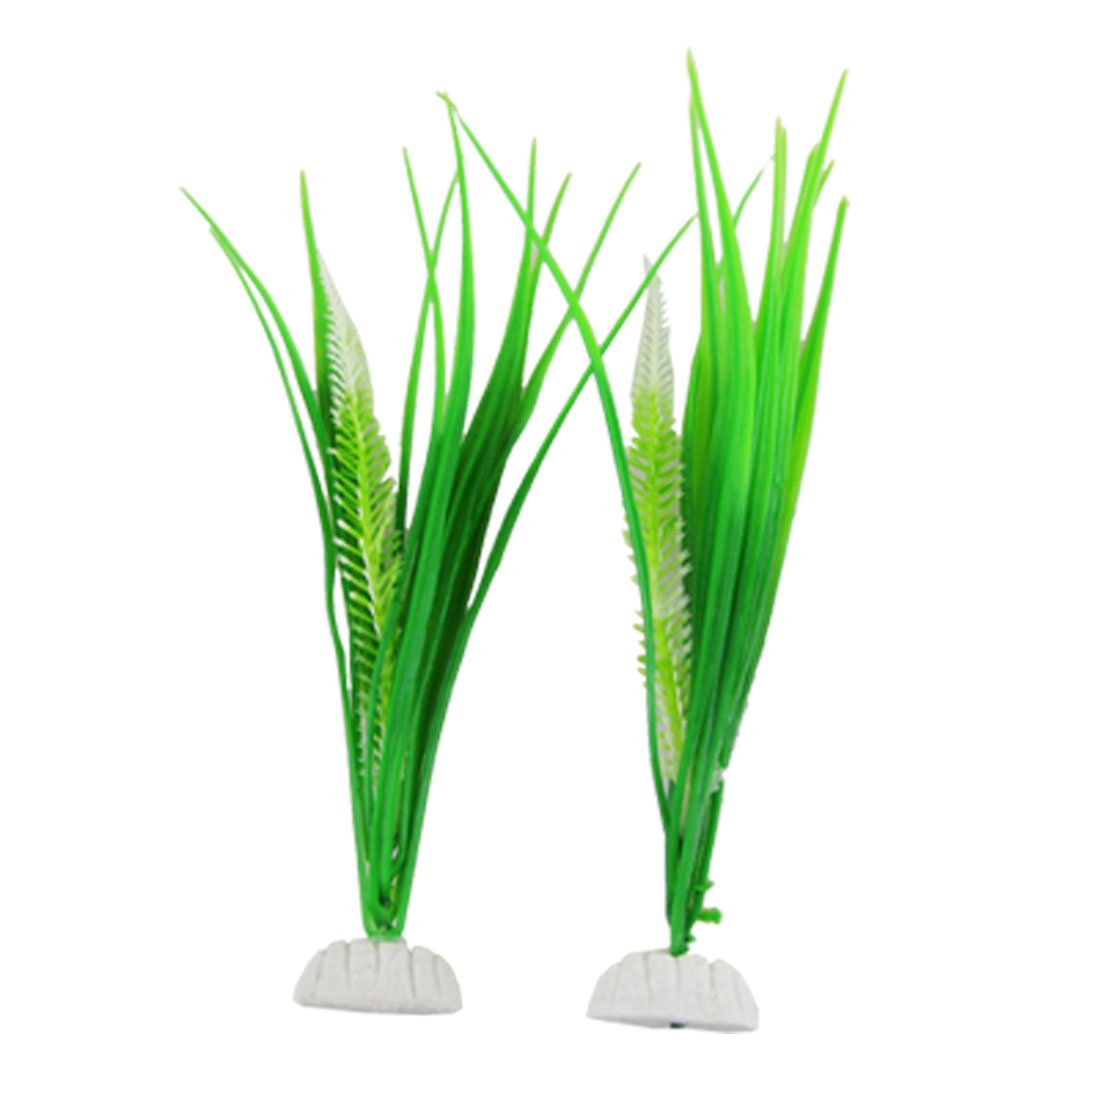 Fish Tank Green Plastic Plant Grass Decor Aquascaping 2 Pcs